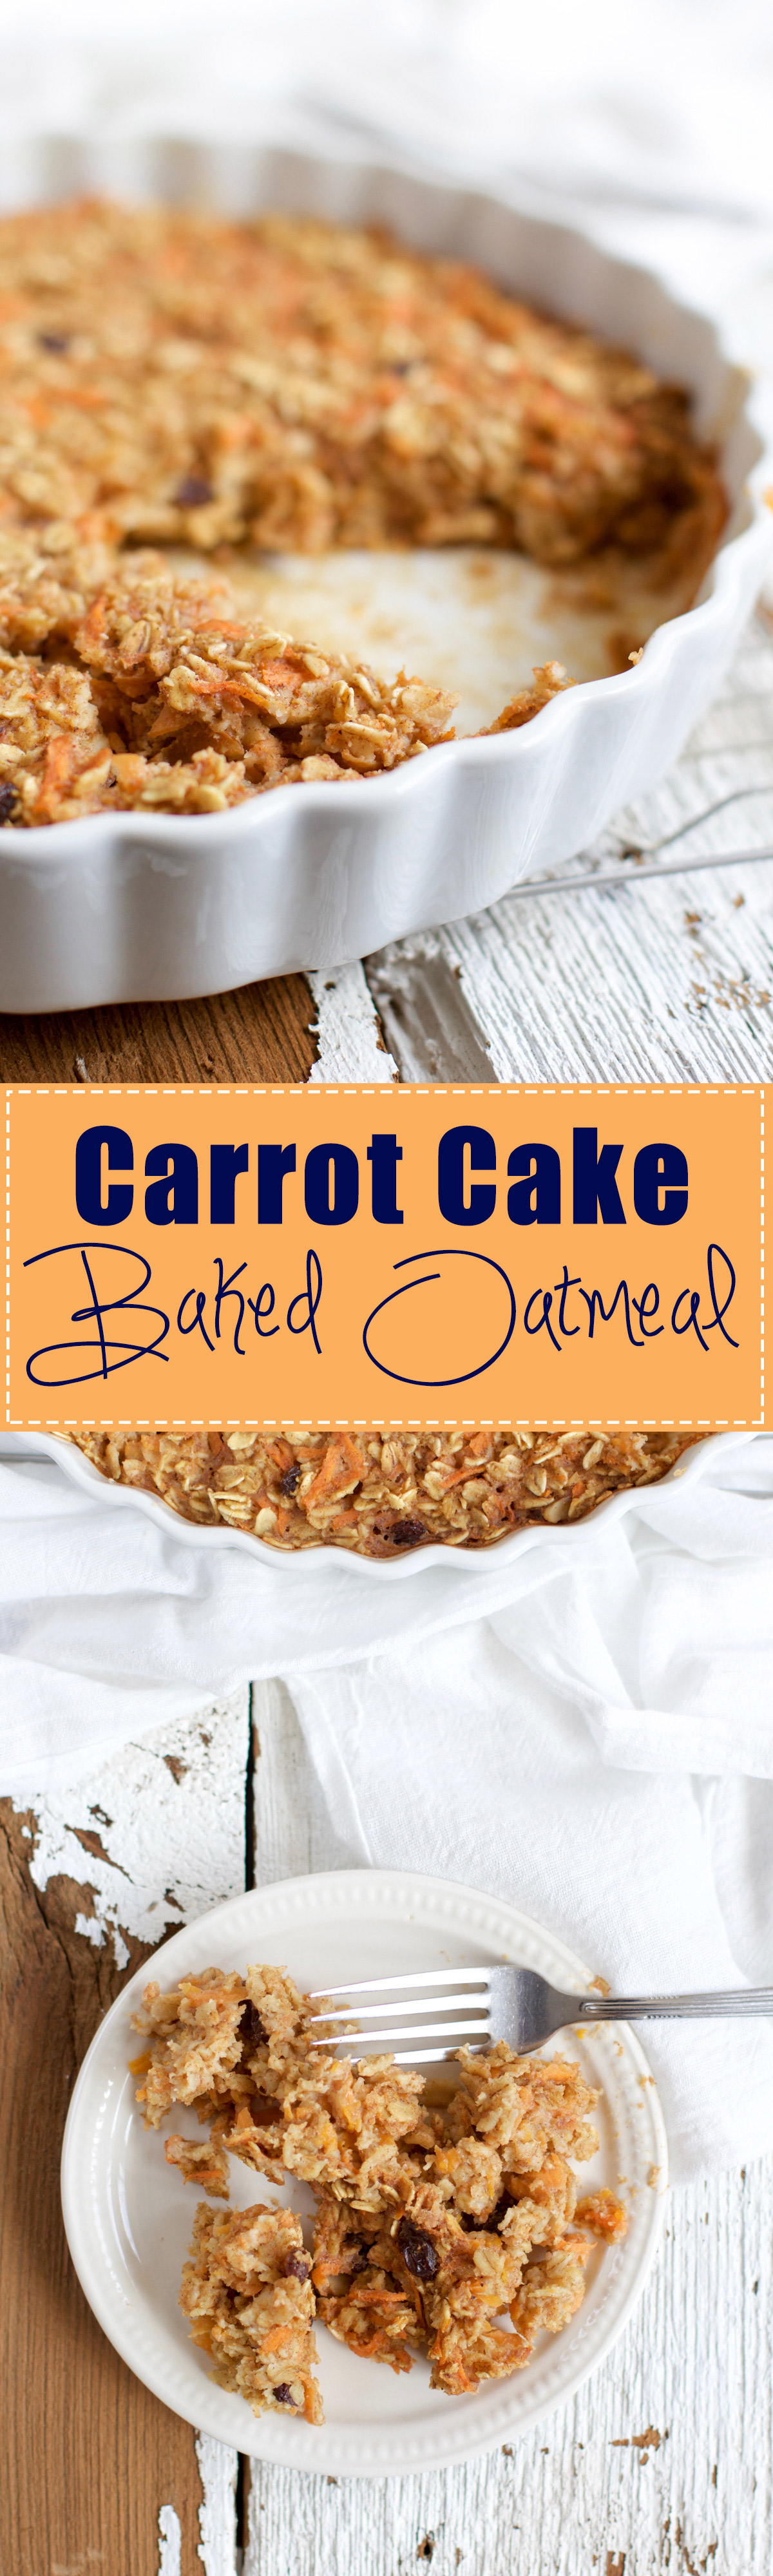 Carrot Cake Baked Oatmeal - A breakfast that tastes like carrot cake but is actually healthy? Yes, please! Perfect for a feeding a crowd of guests for Easter brunch. Made with whole ingredients, and plenty of walnuts, raisins, and cinnamon-y flavor. | rootsandradishes.com